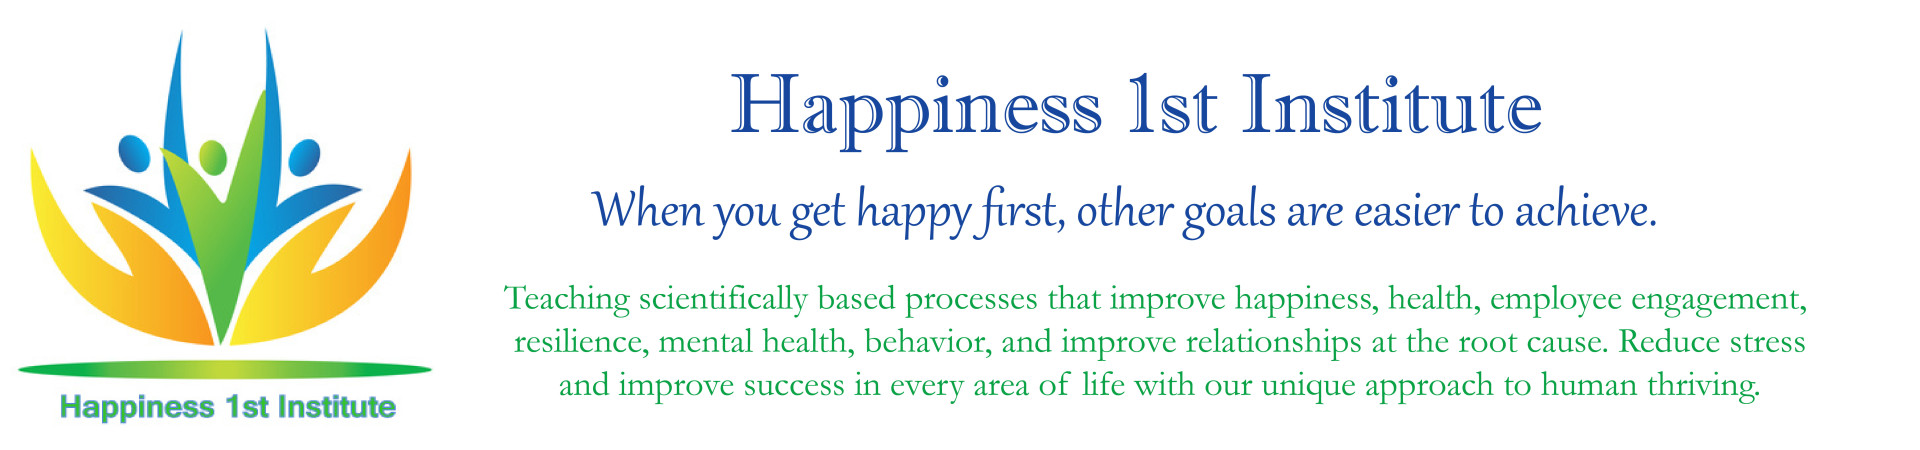 Happiness 1st Institute